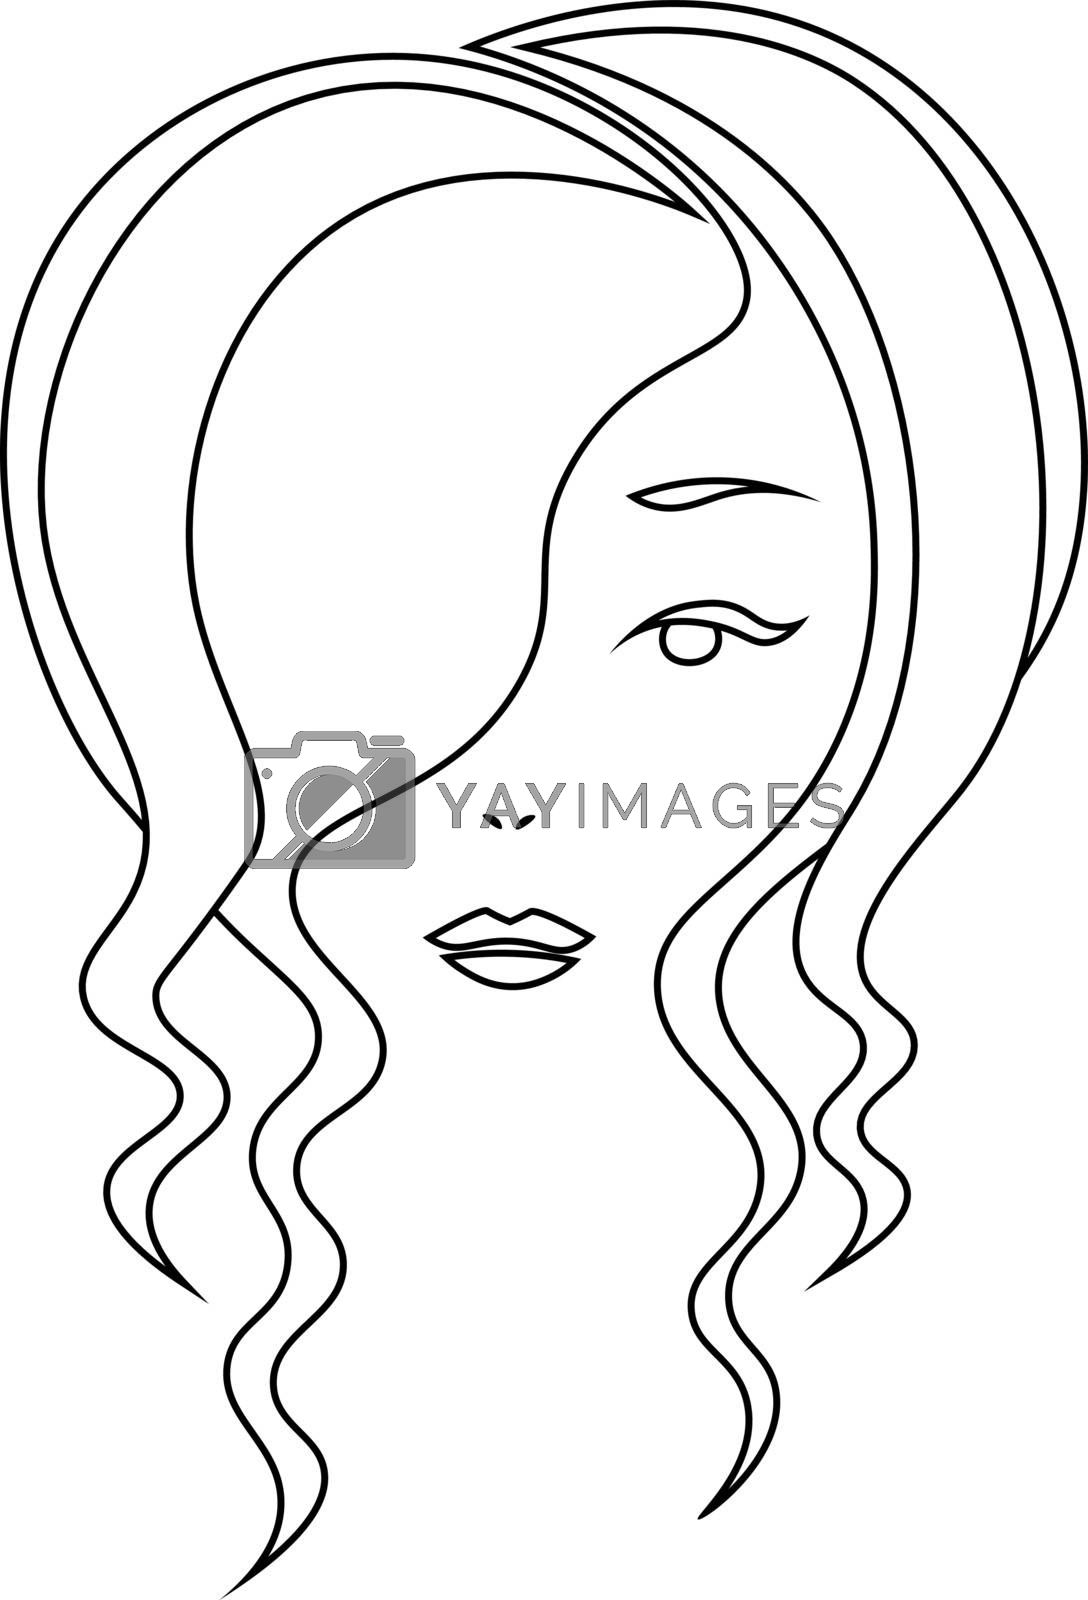 Simple contour minimal sketch face of woman with wavy hair